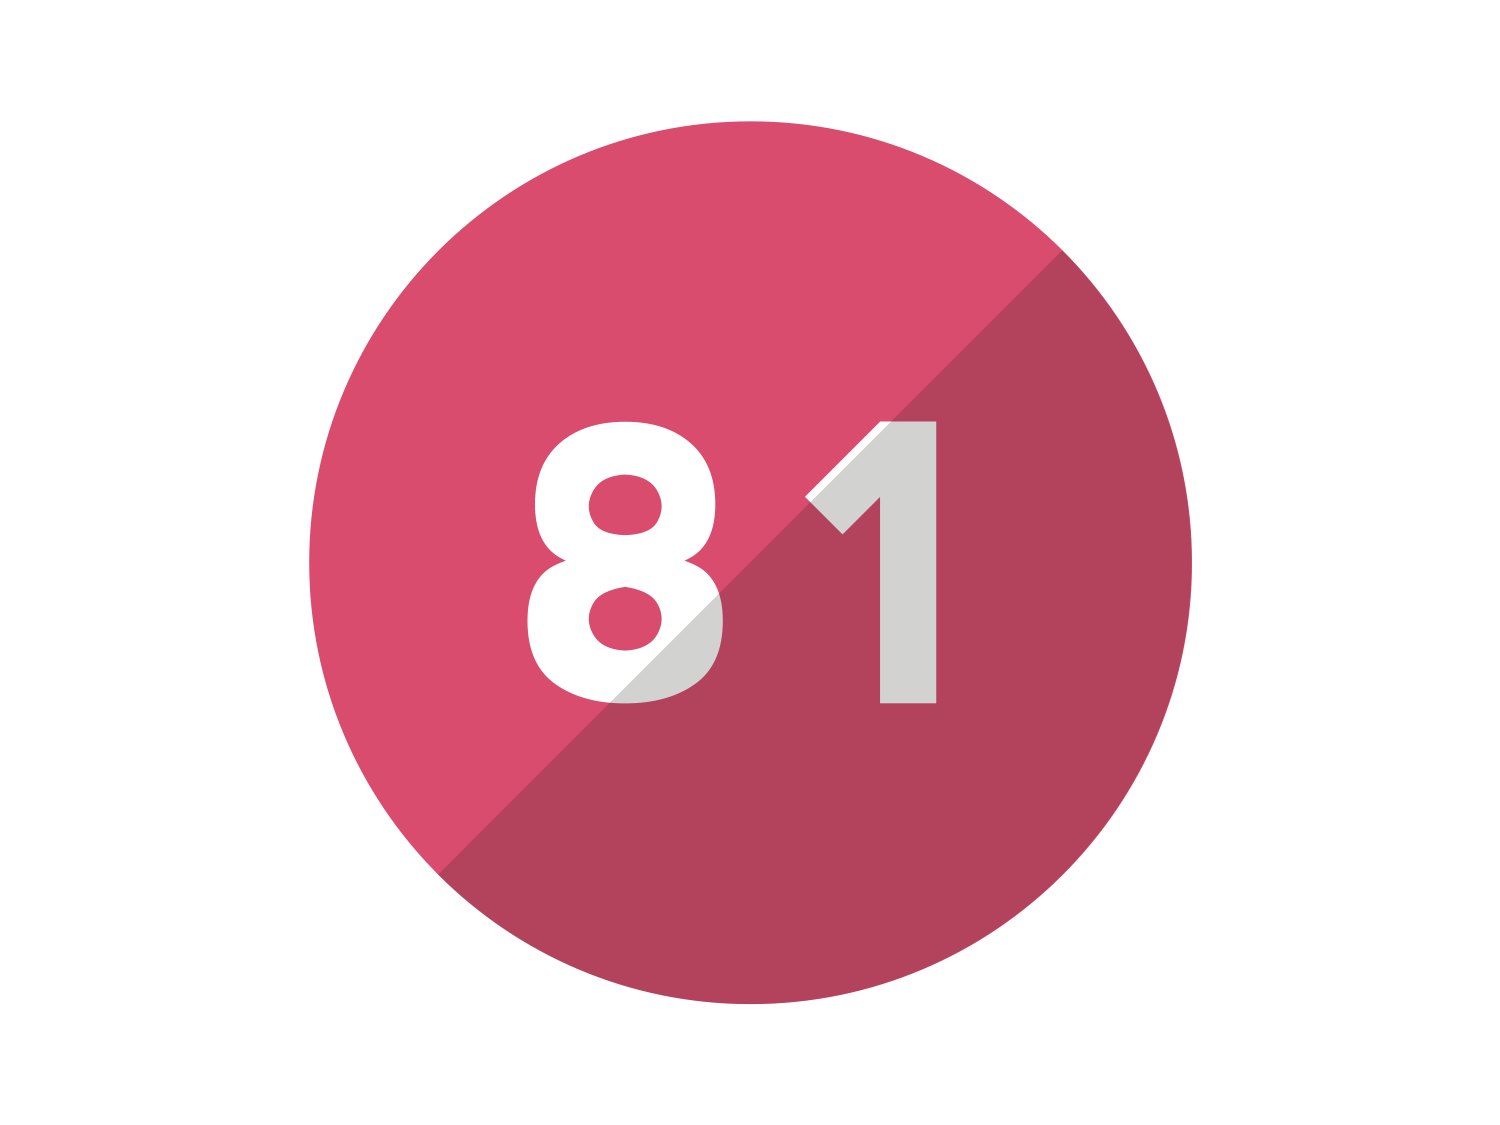 Number 81 in Numerology